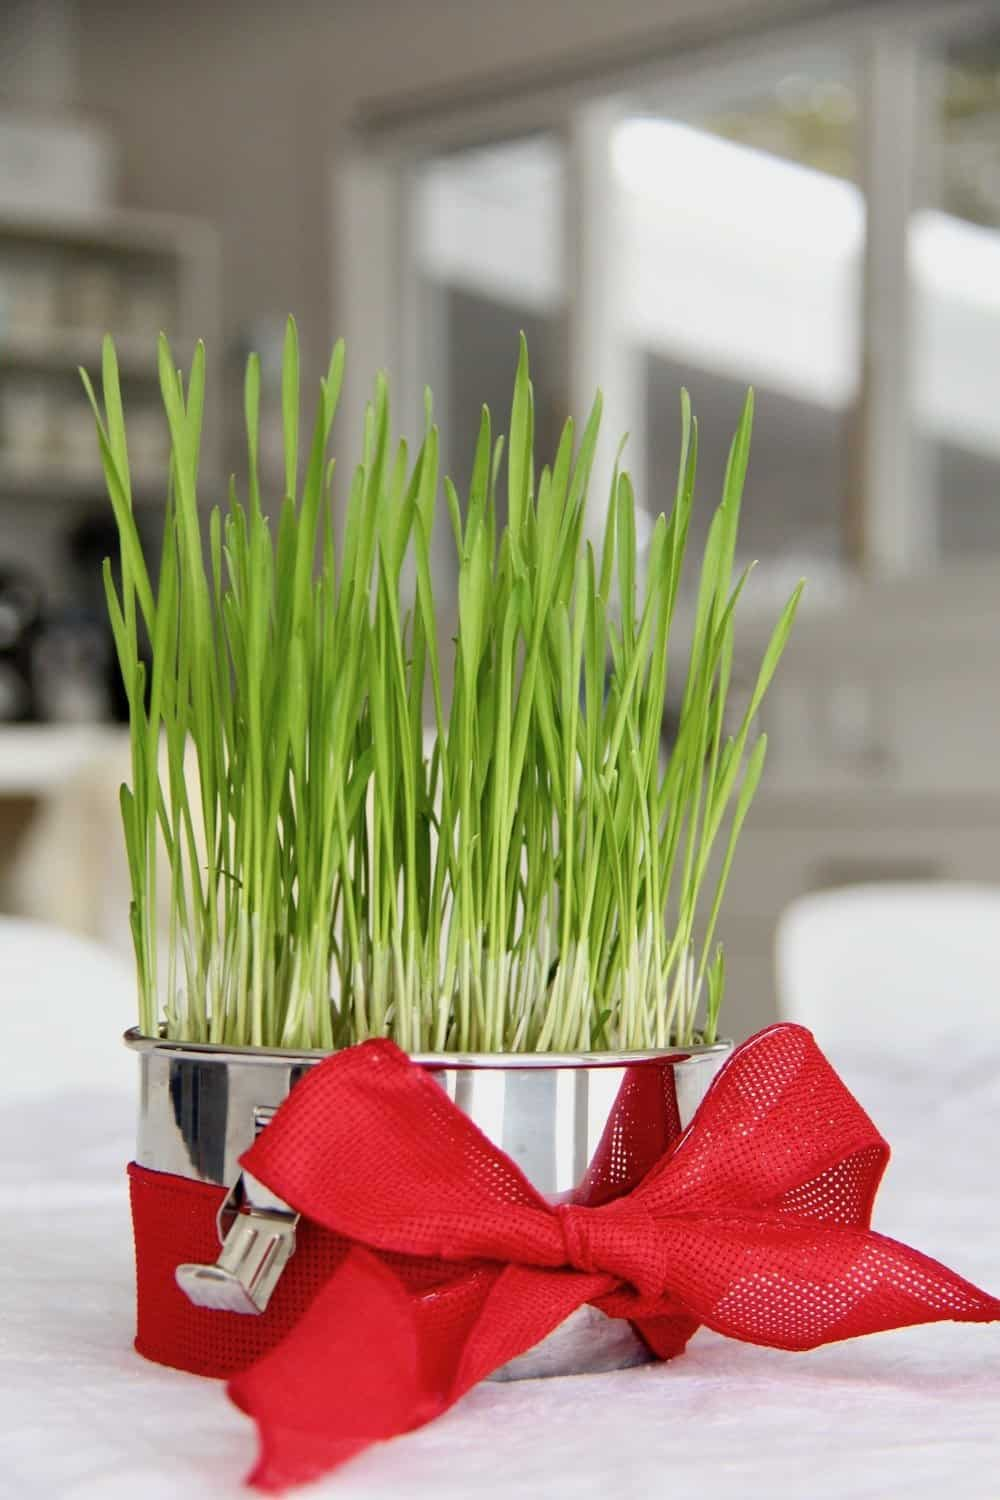 Green wheatgrass growing in metal container wrapped in red ribbon as a green valentine gift